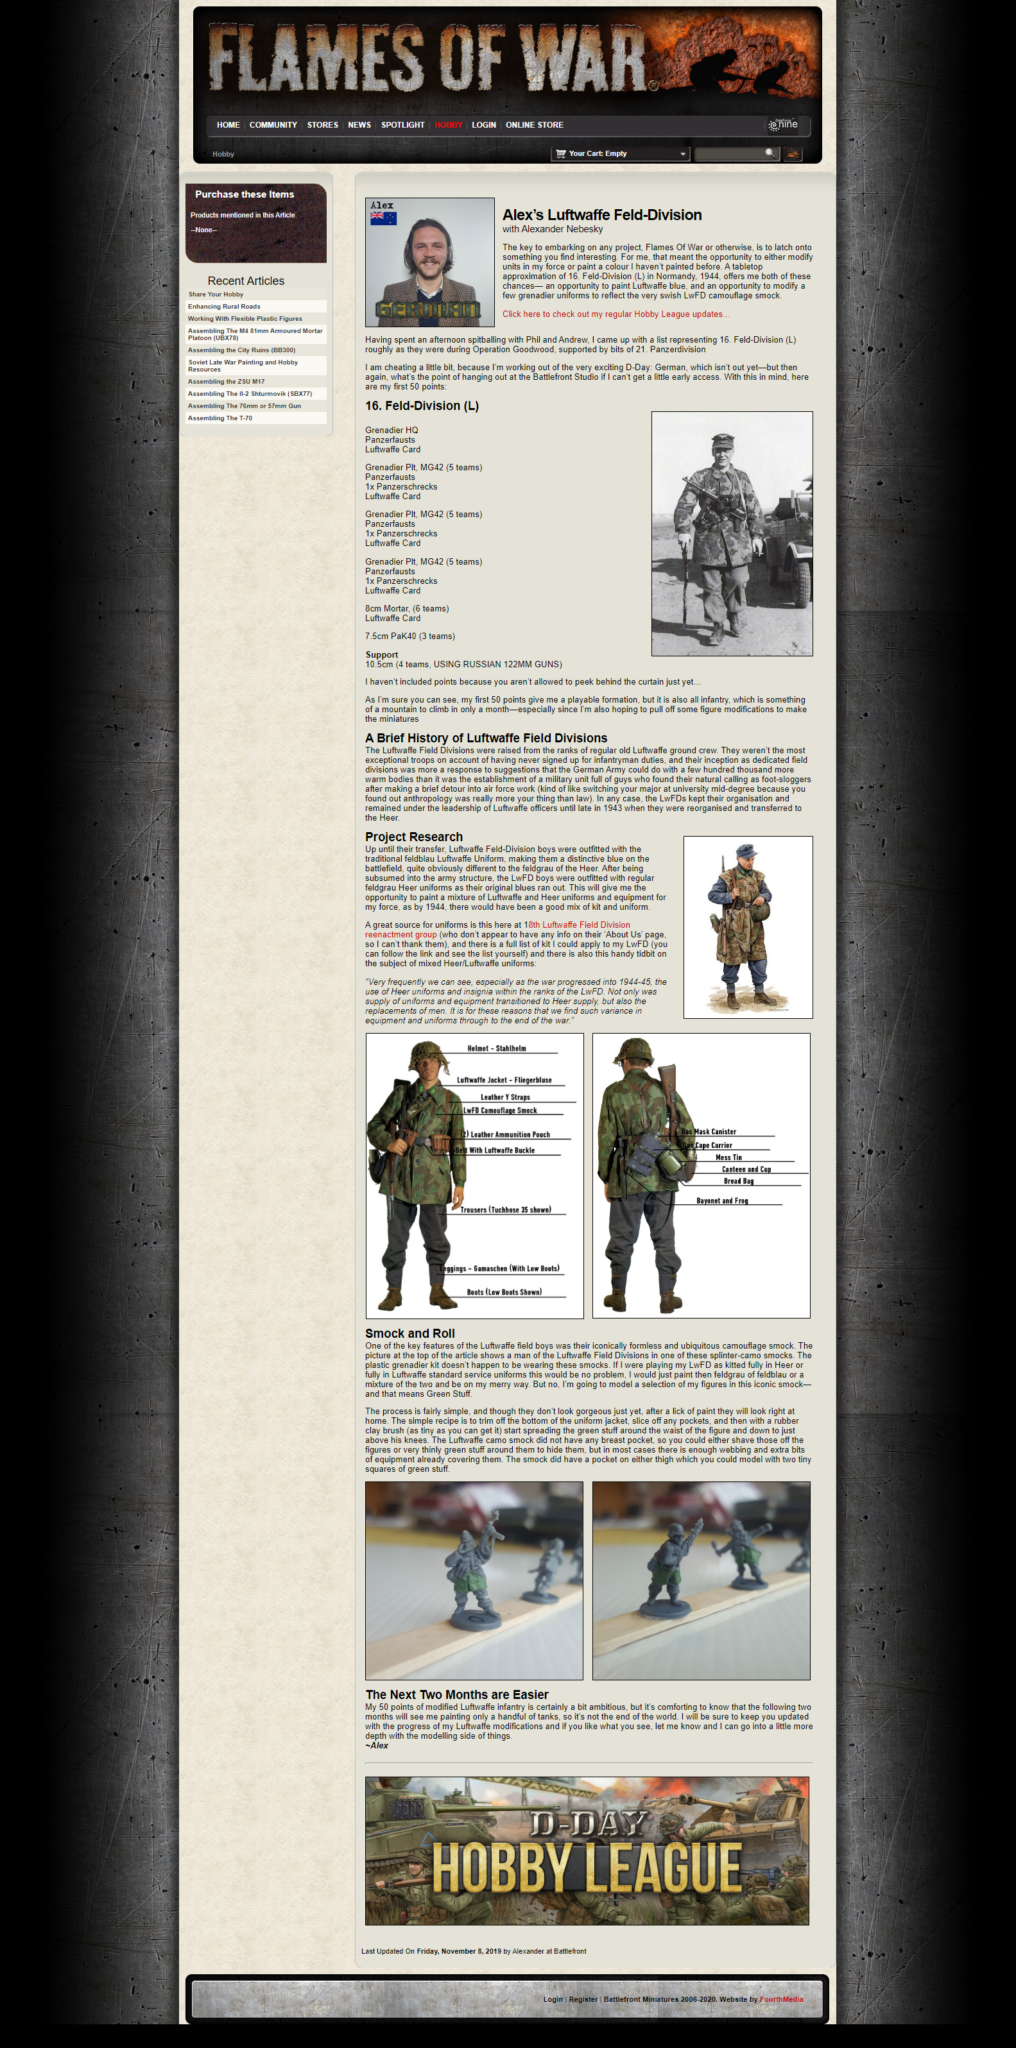 Written as part of an article series promoting the Flames Of War D-Day Hobby League for Battlefront Miniatures.